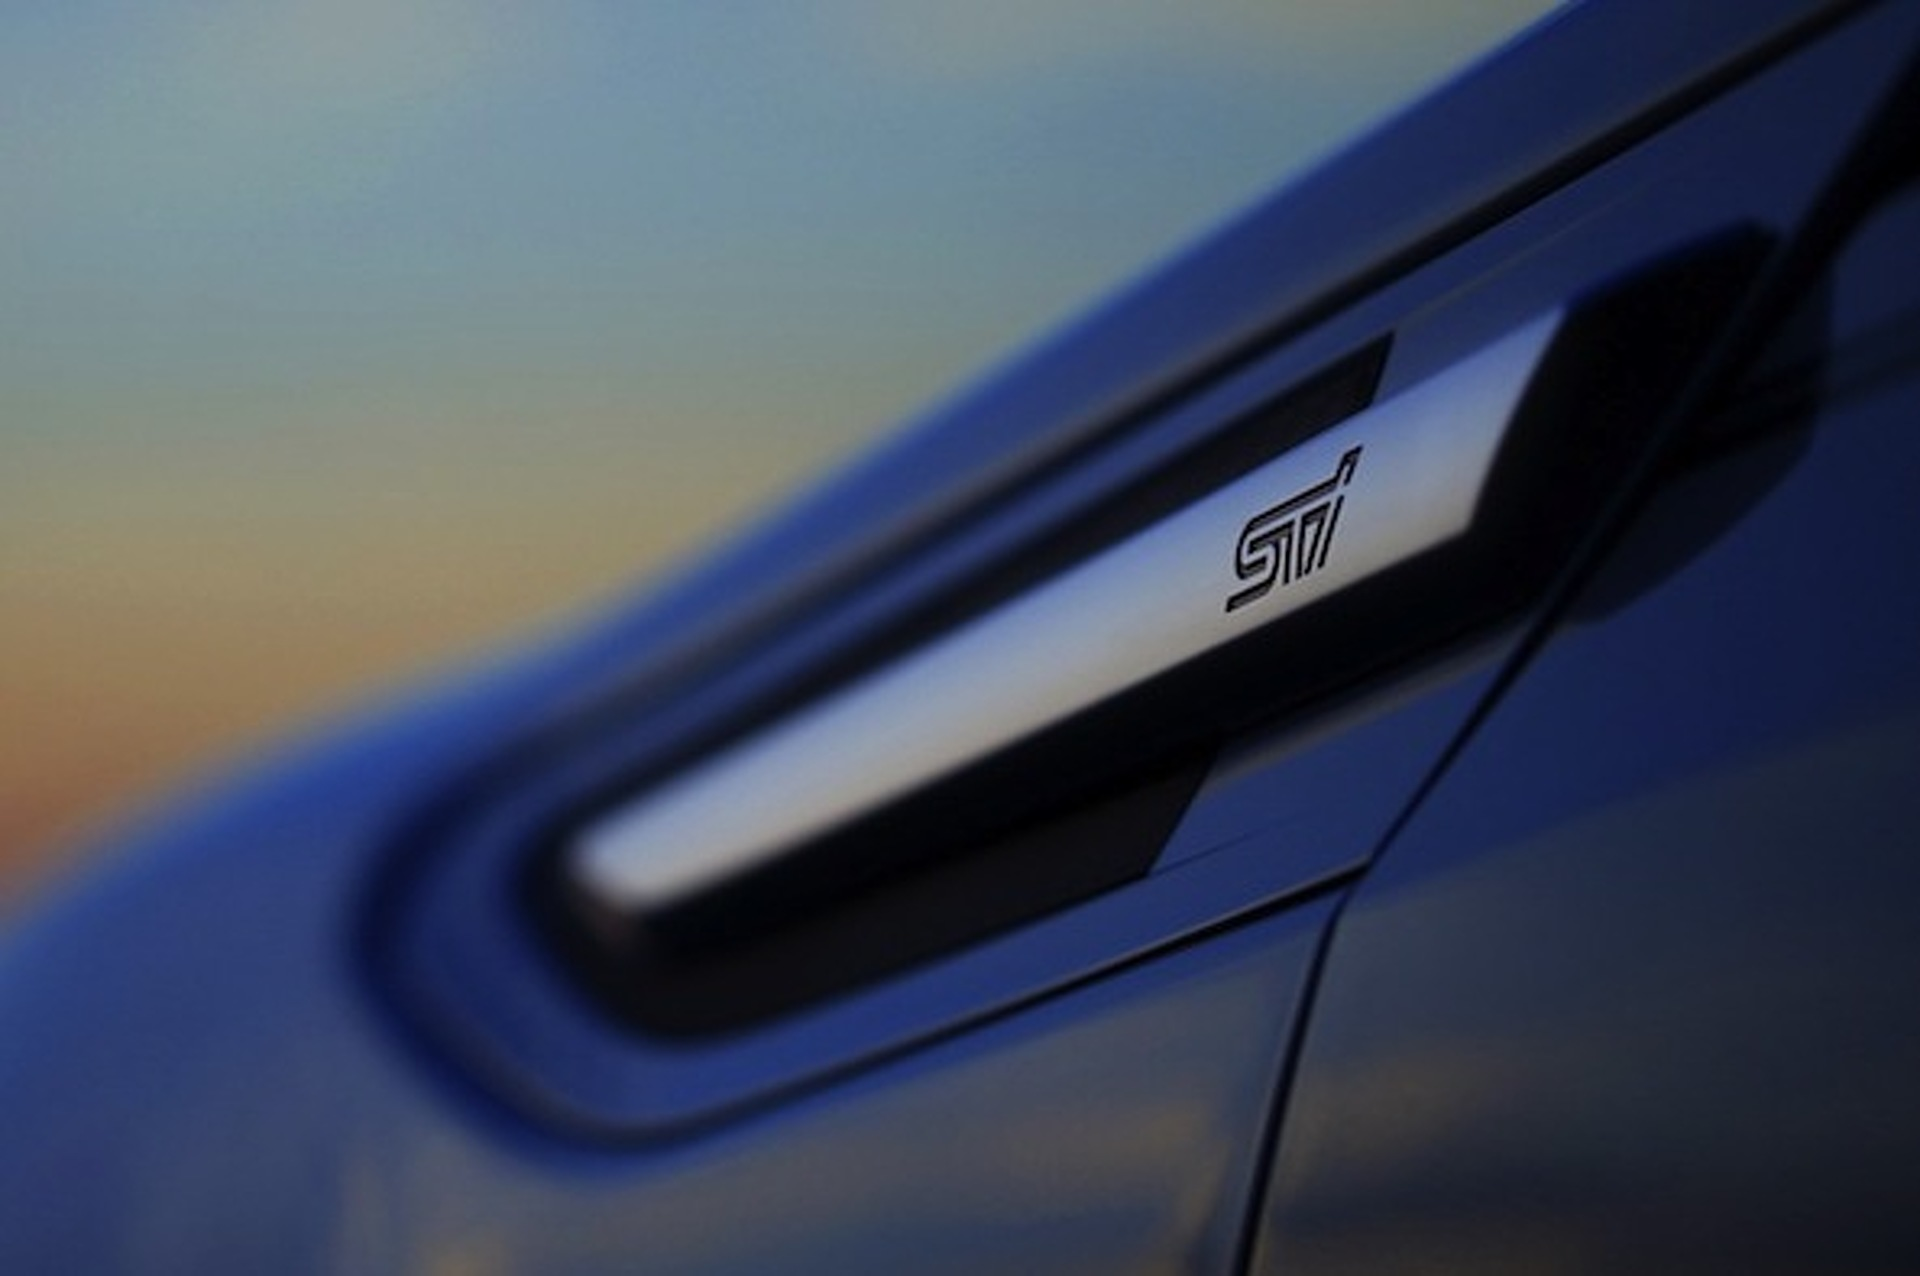 Subaru Teases Upcoming BRZ STI [UPDATE] ...Or Is It?